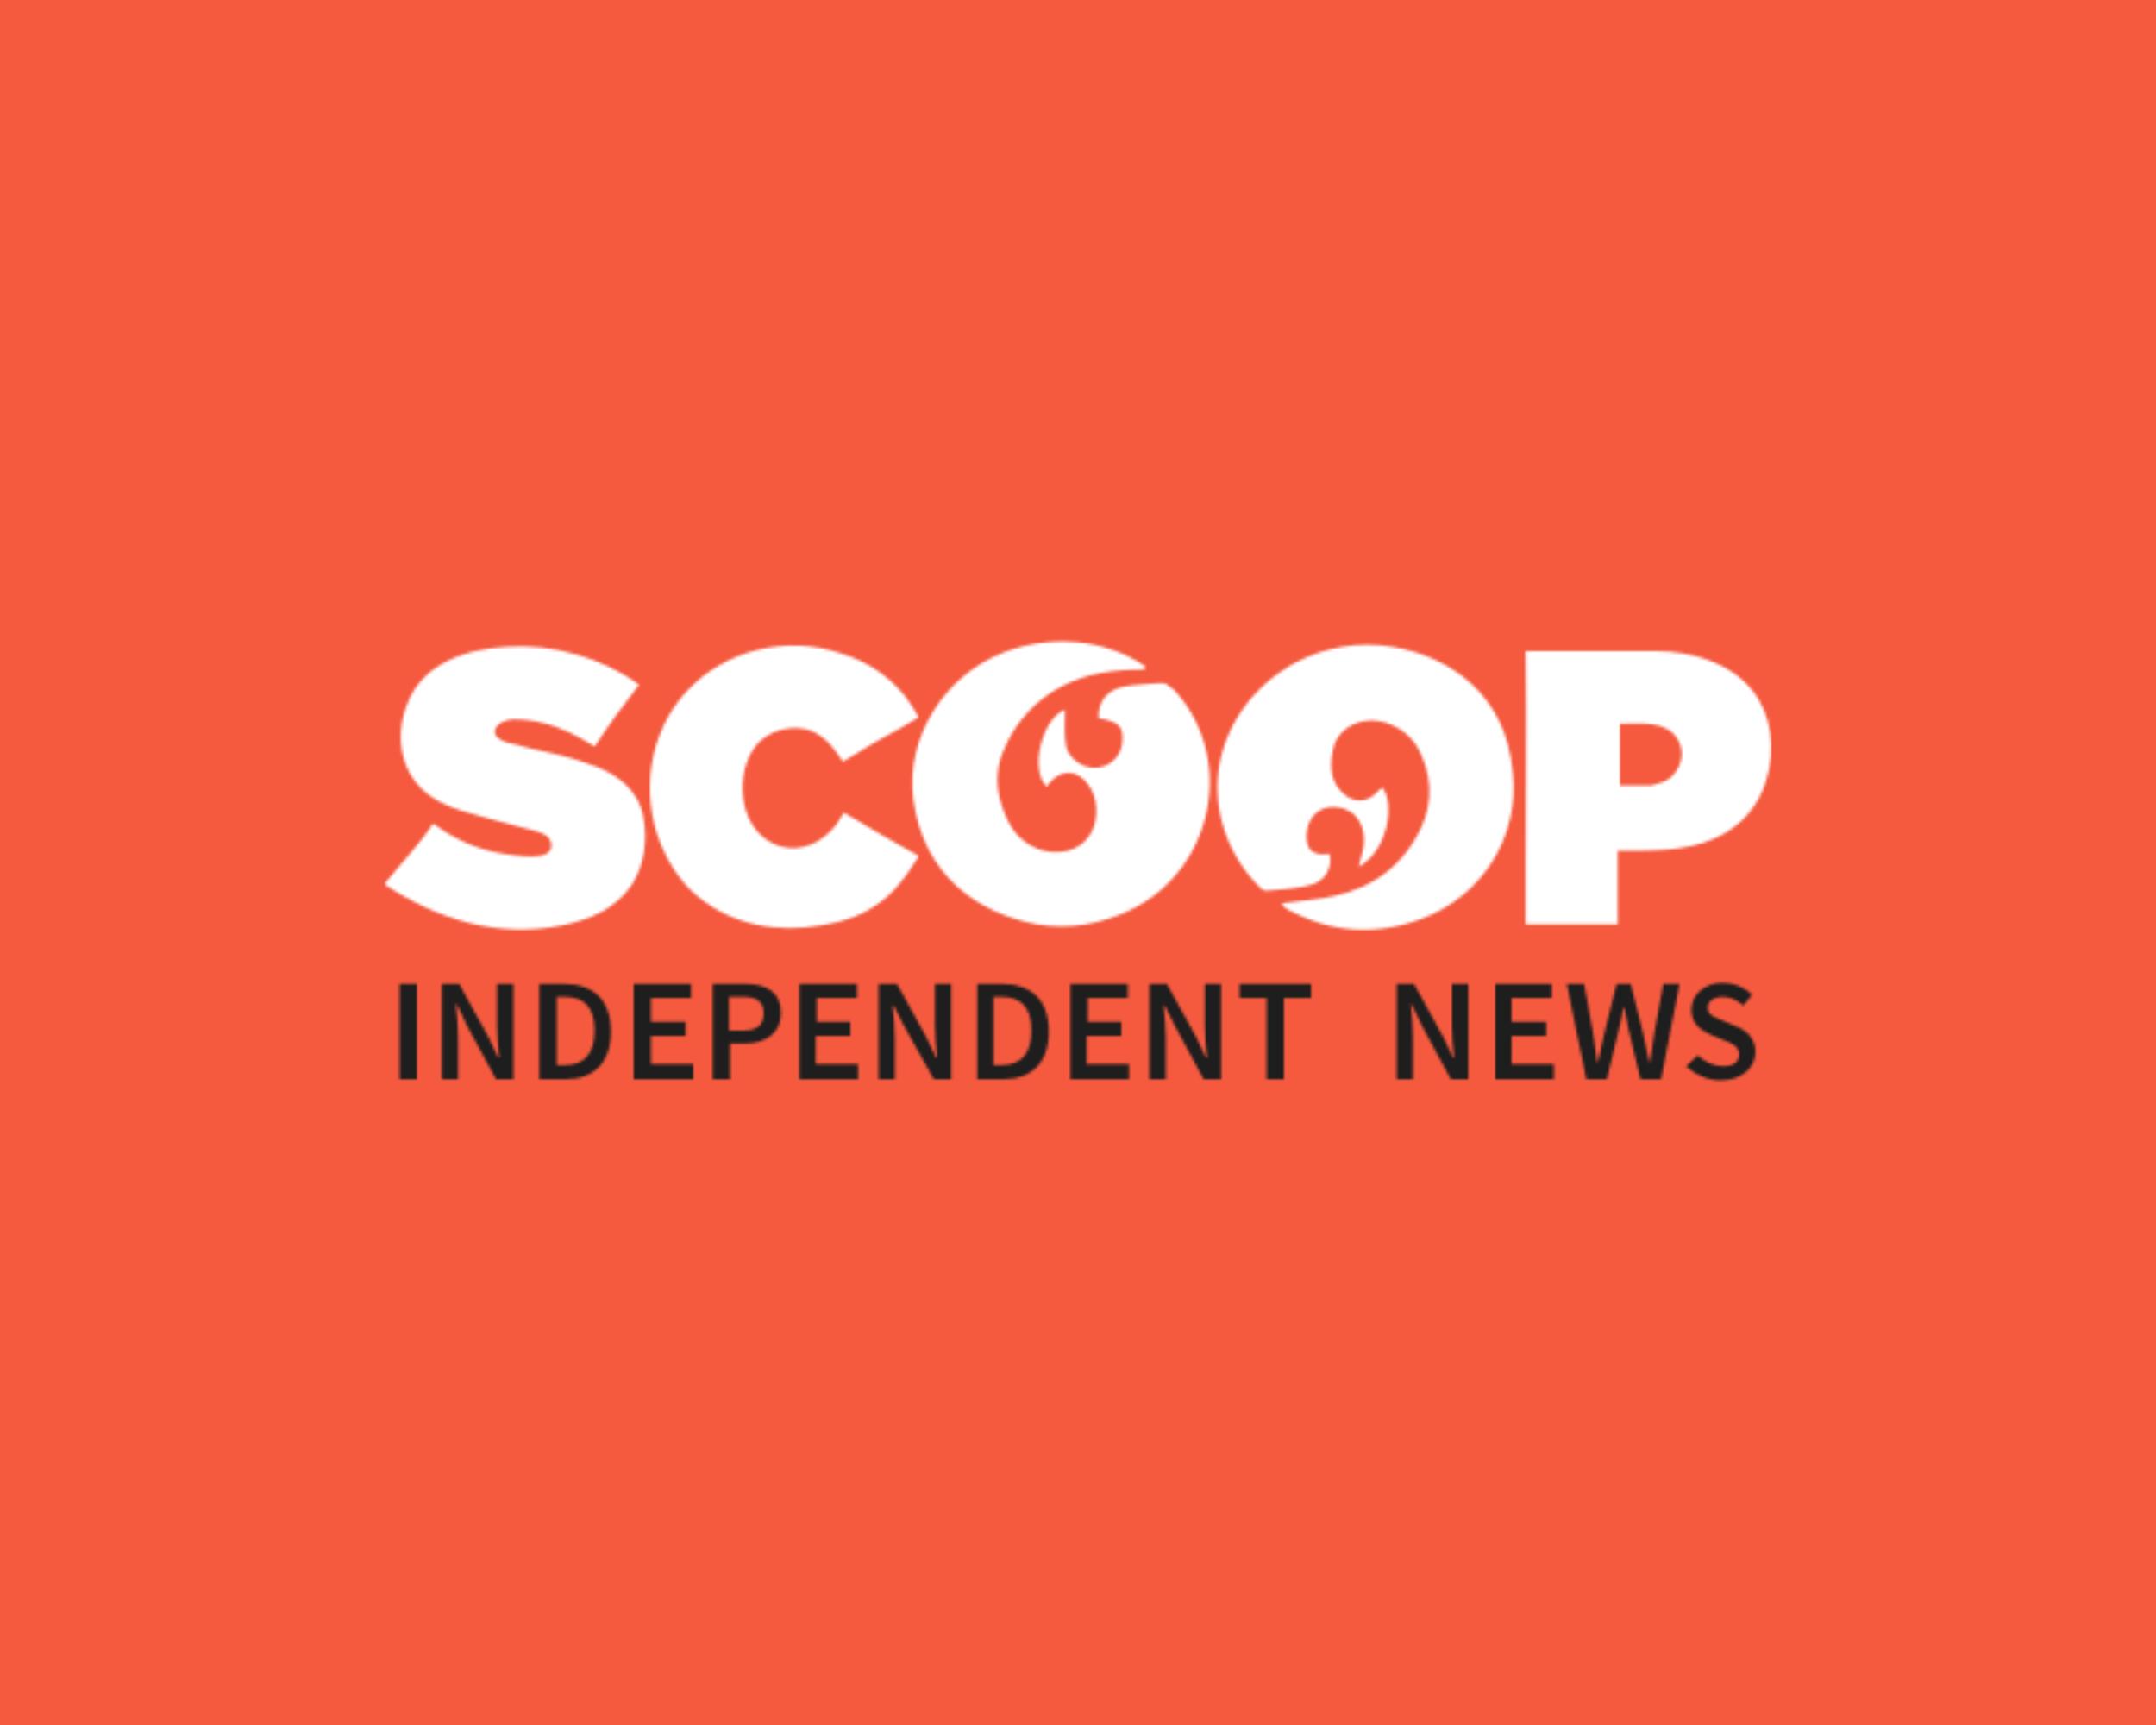 Scoop, 13 Sep 2018 # $11.5 million grant to help safeguard NZ's blue economy